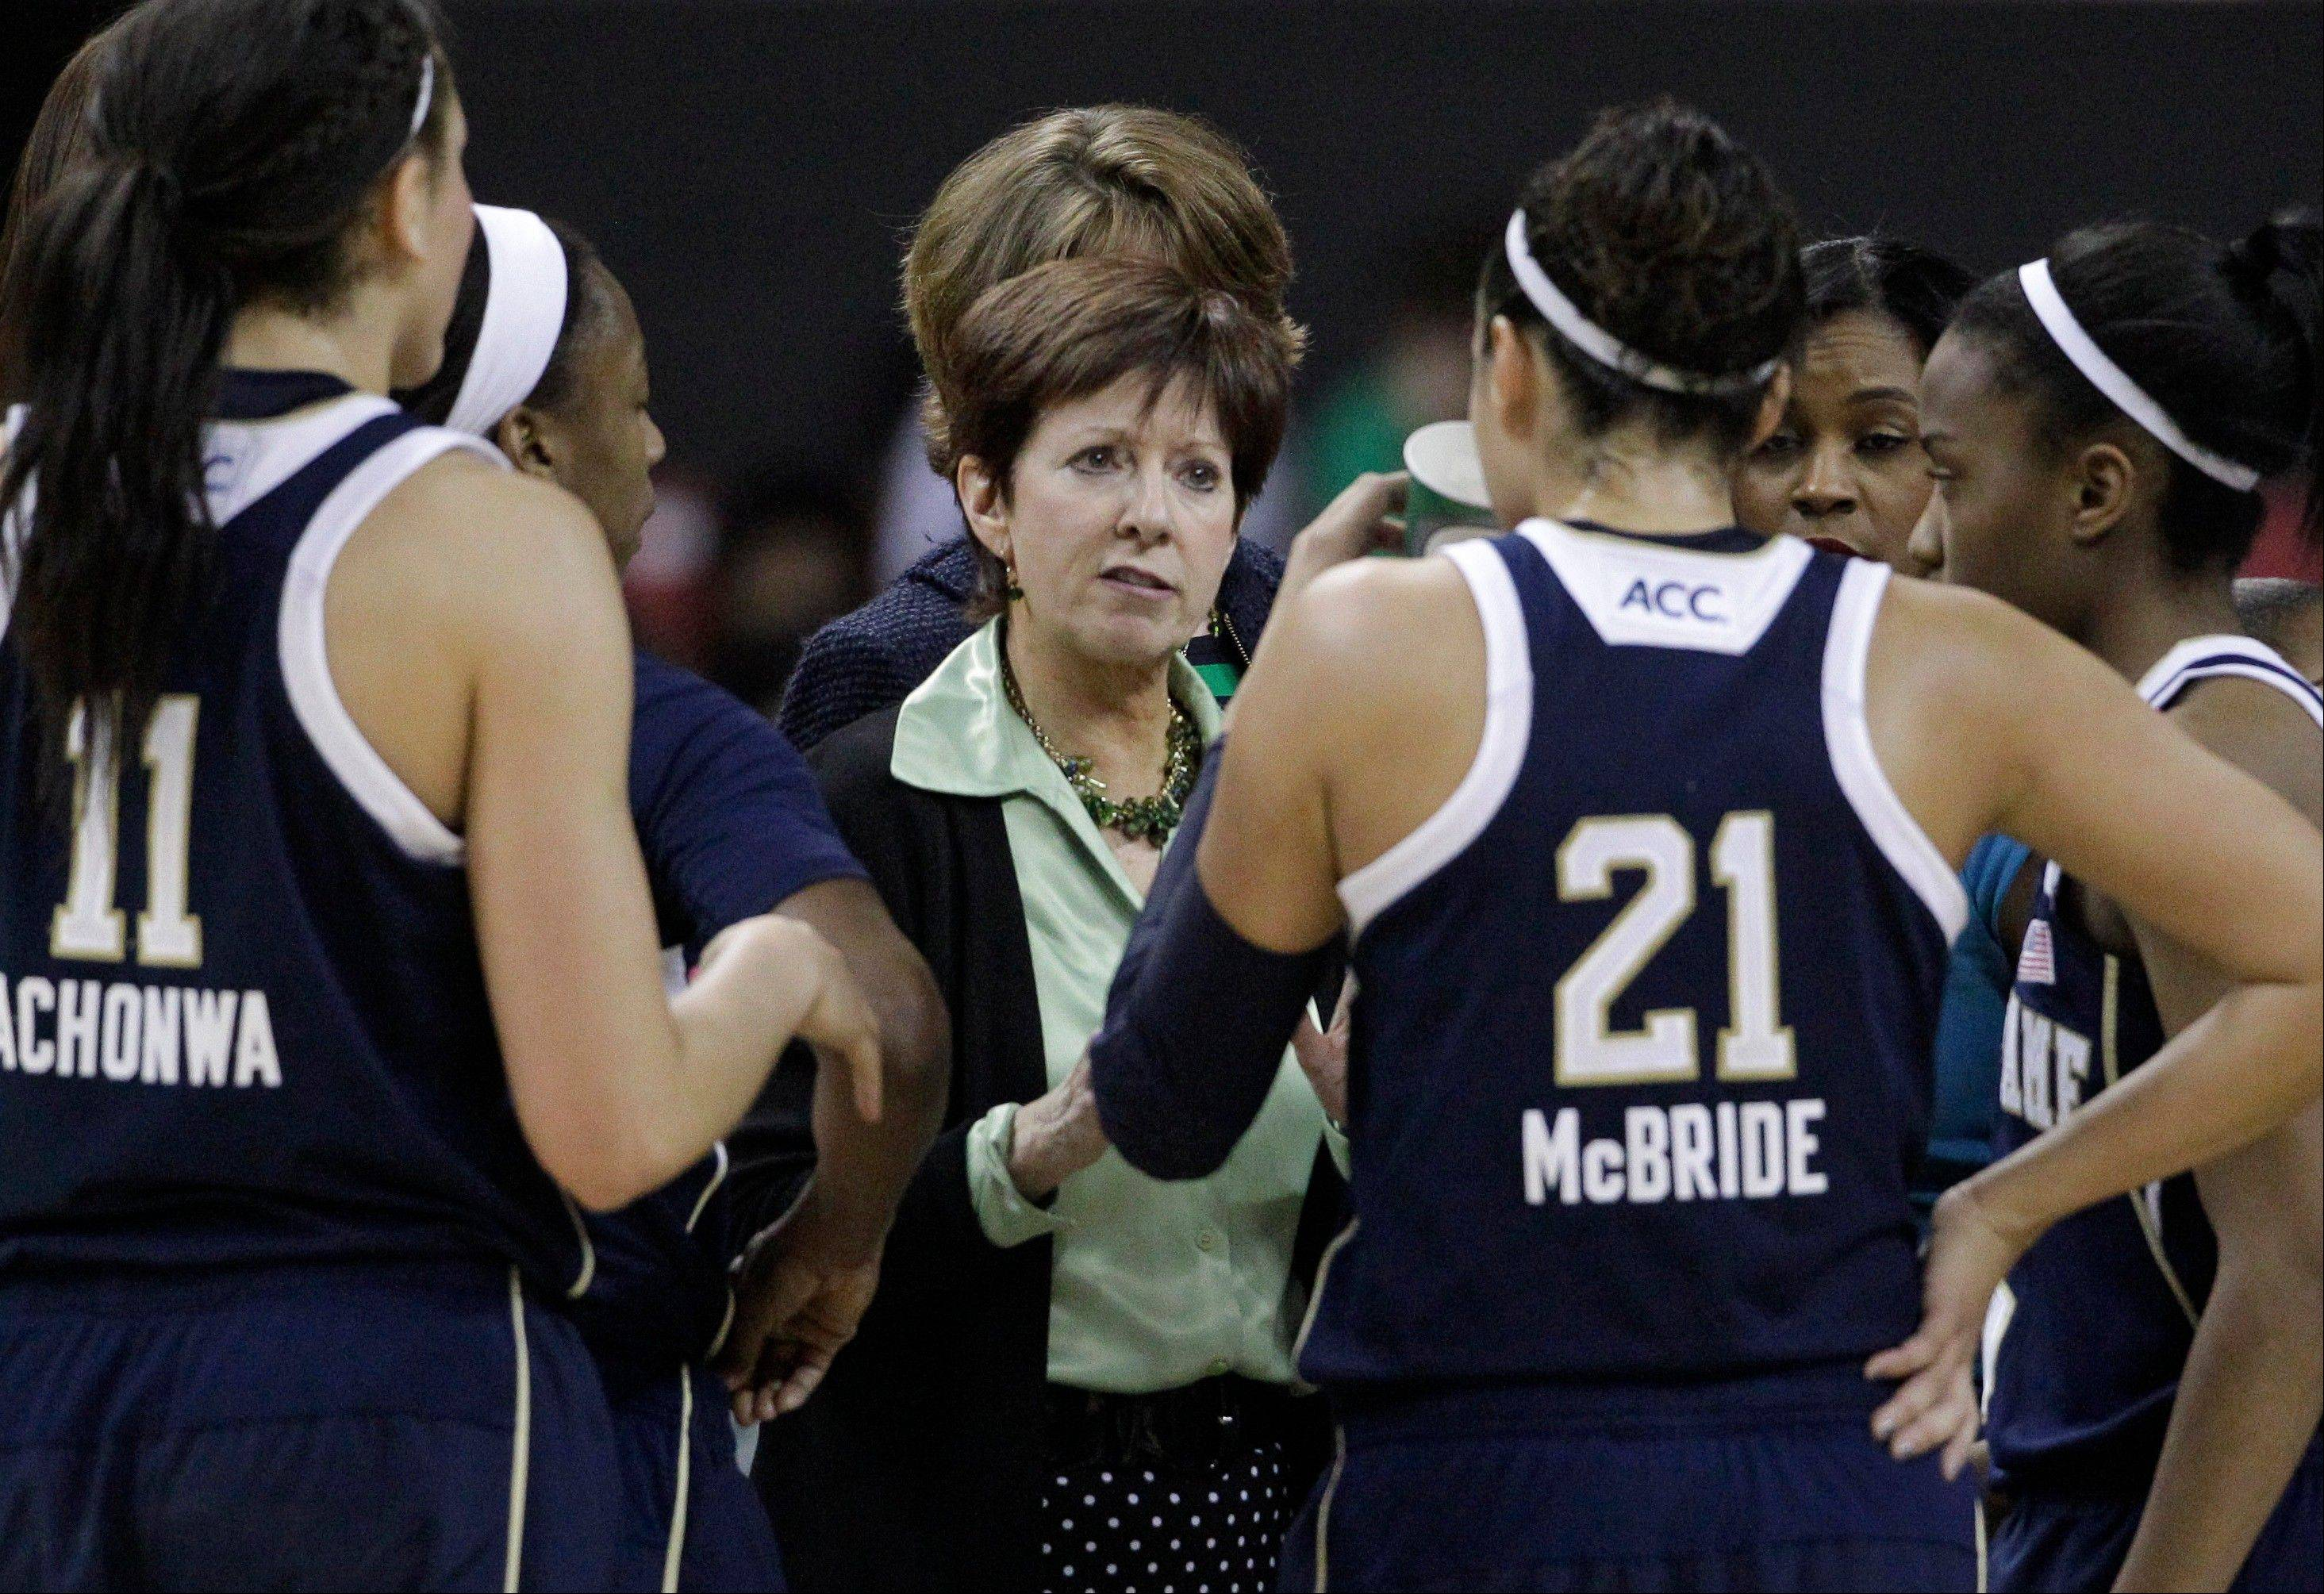 Notre Dame head coach Muffet McGraw, center, huddles with her team during a timeout in the second half of an NCAA college basketball game Monday against Maryland in College Park, Md. Notre Dame won 87-83.